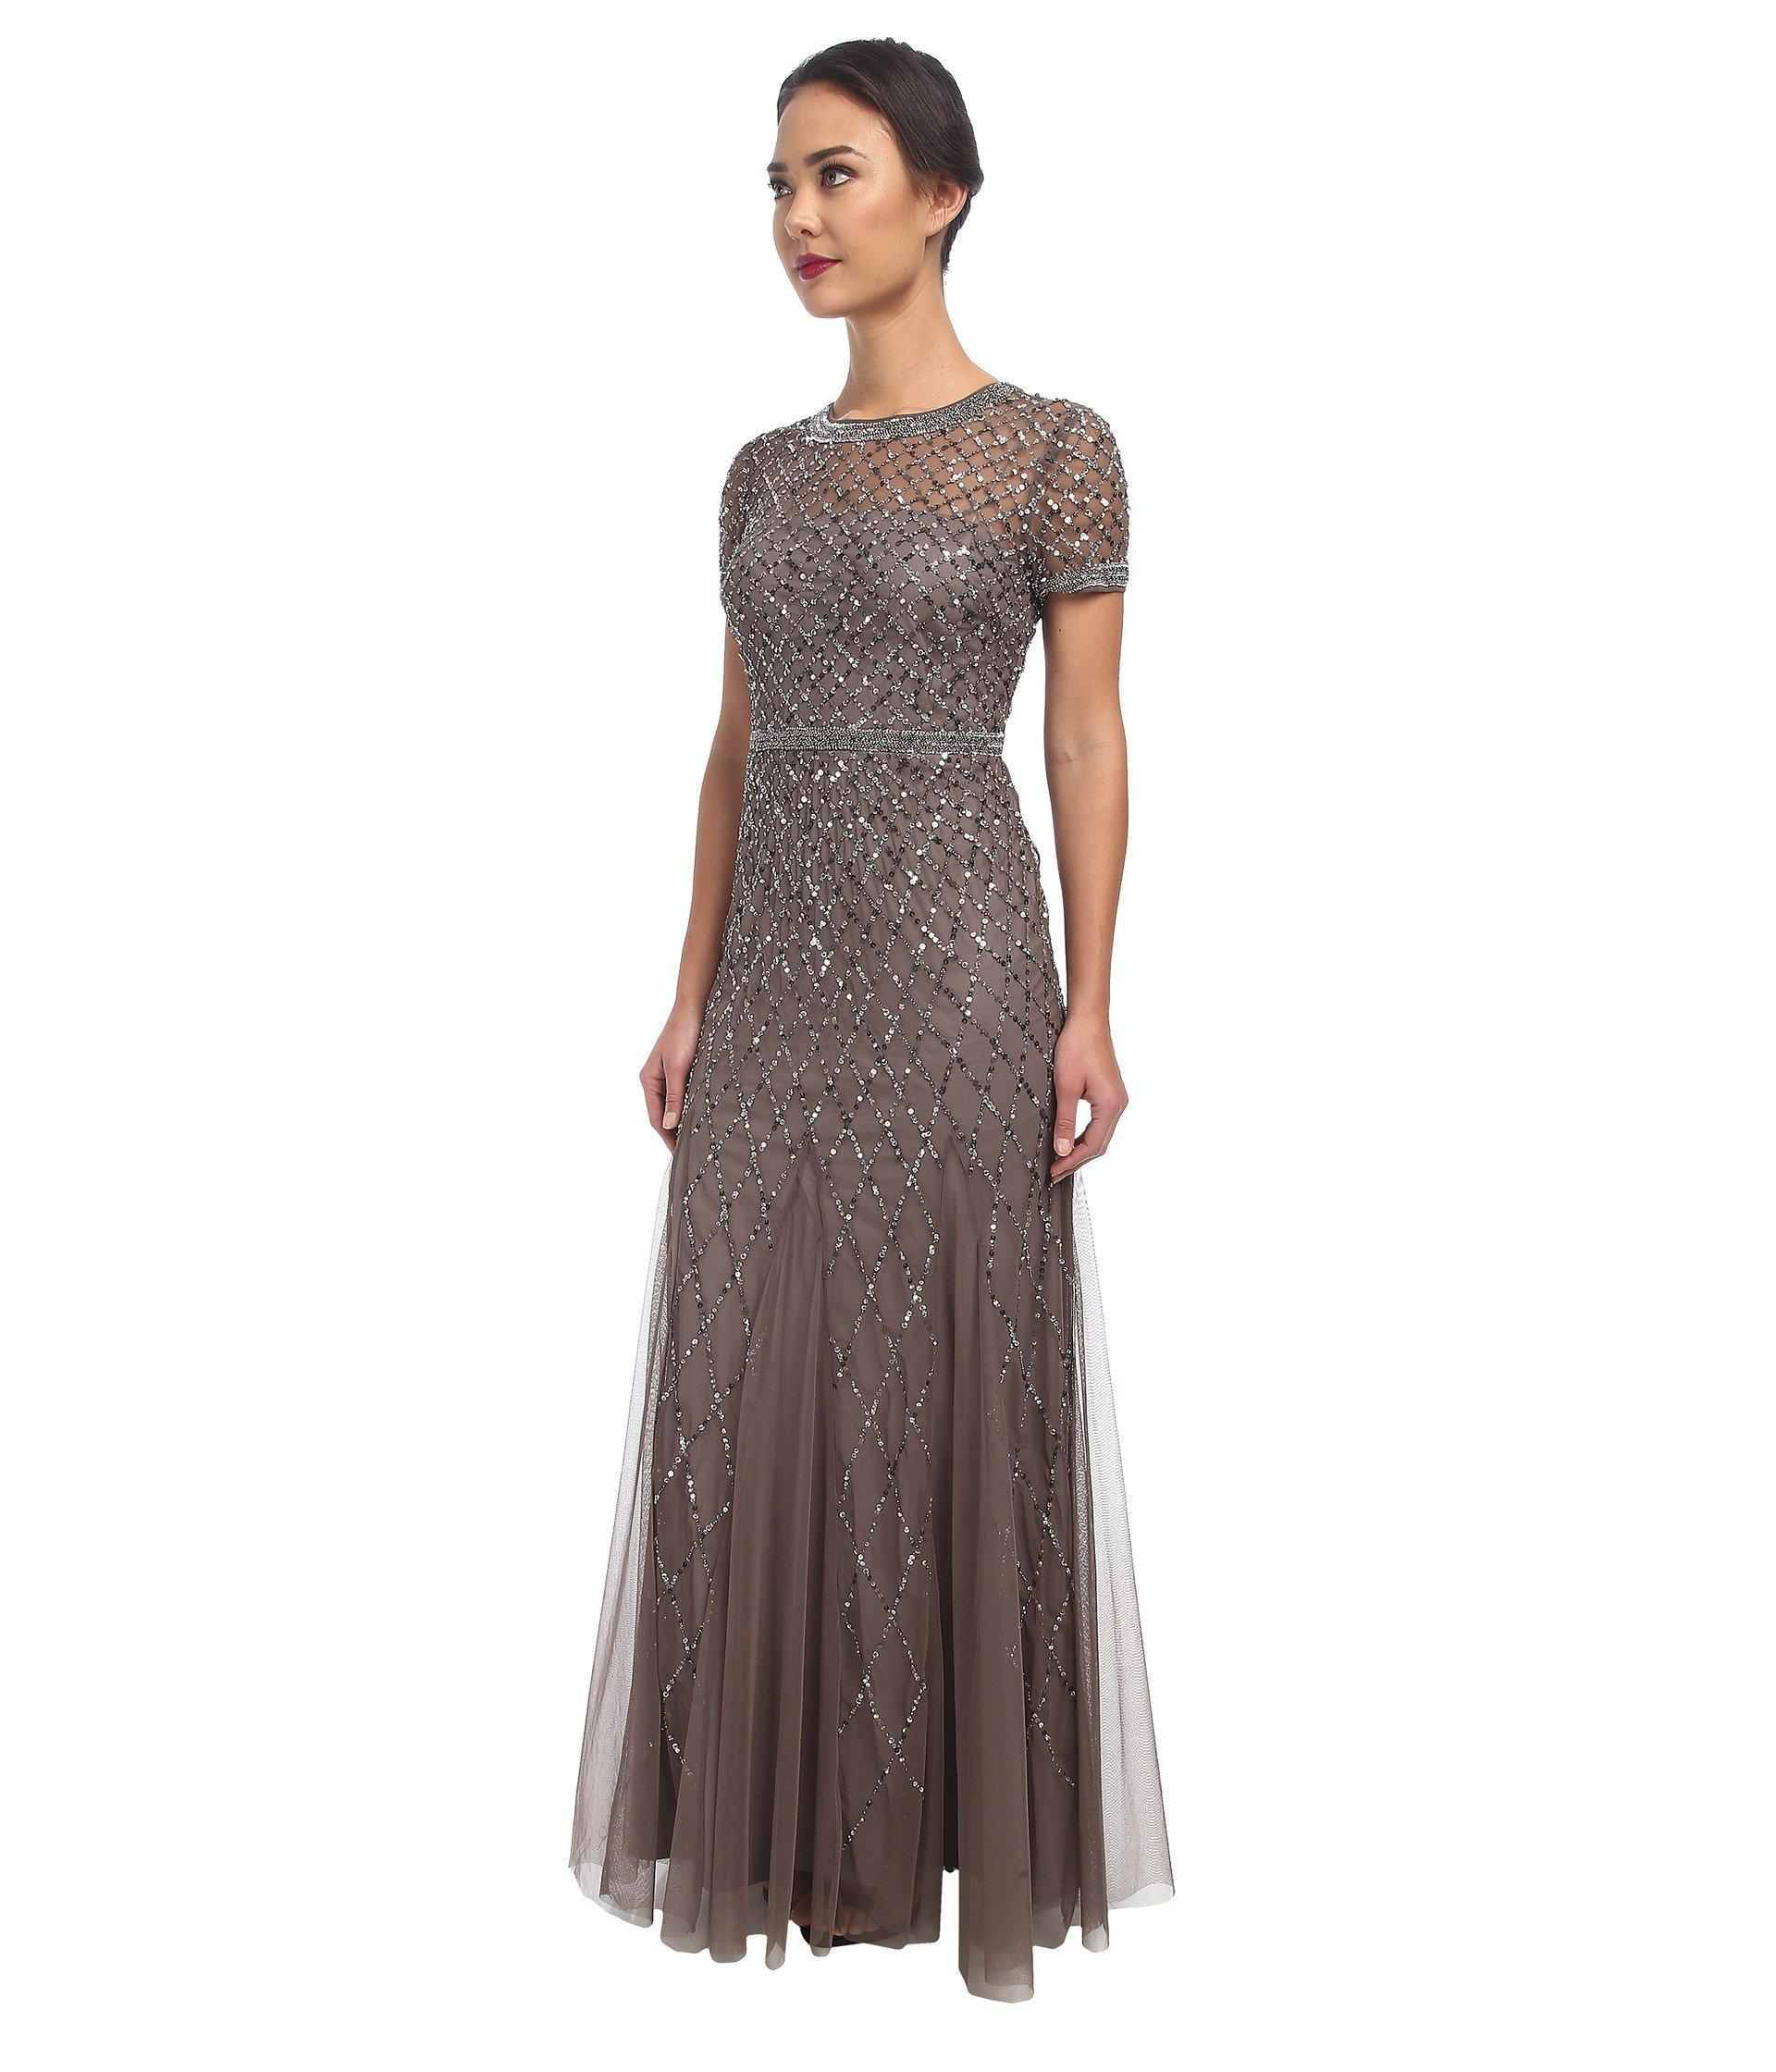 Lyst - Adrianna Papell Cap Sleeve Fully Beaded Gown (lead) Women's Dress in Gray